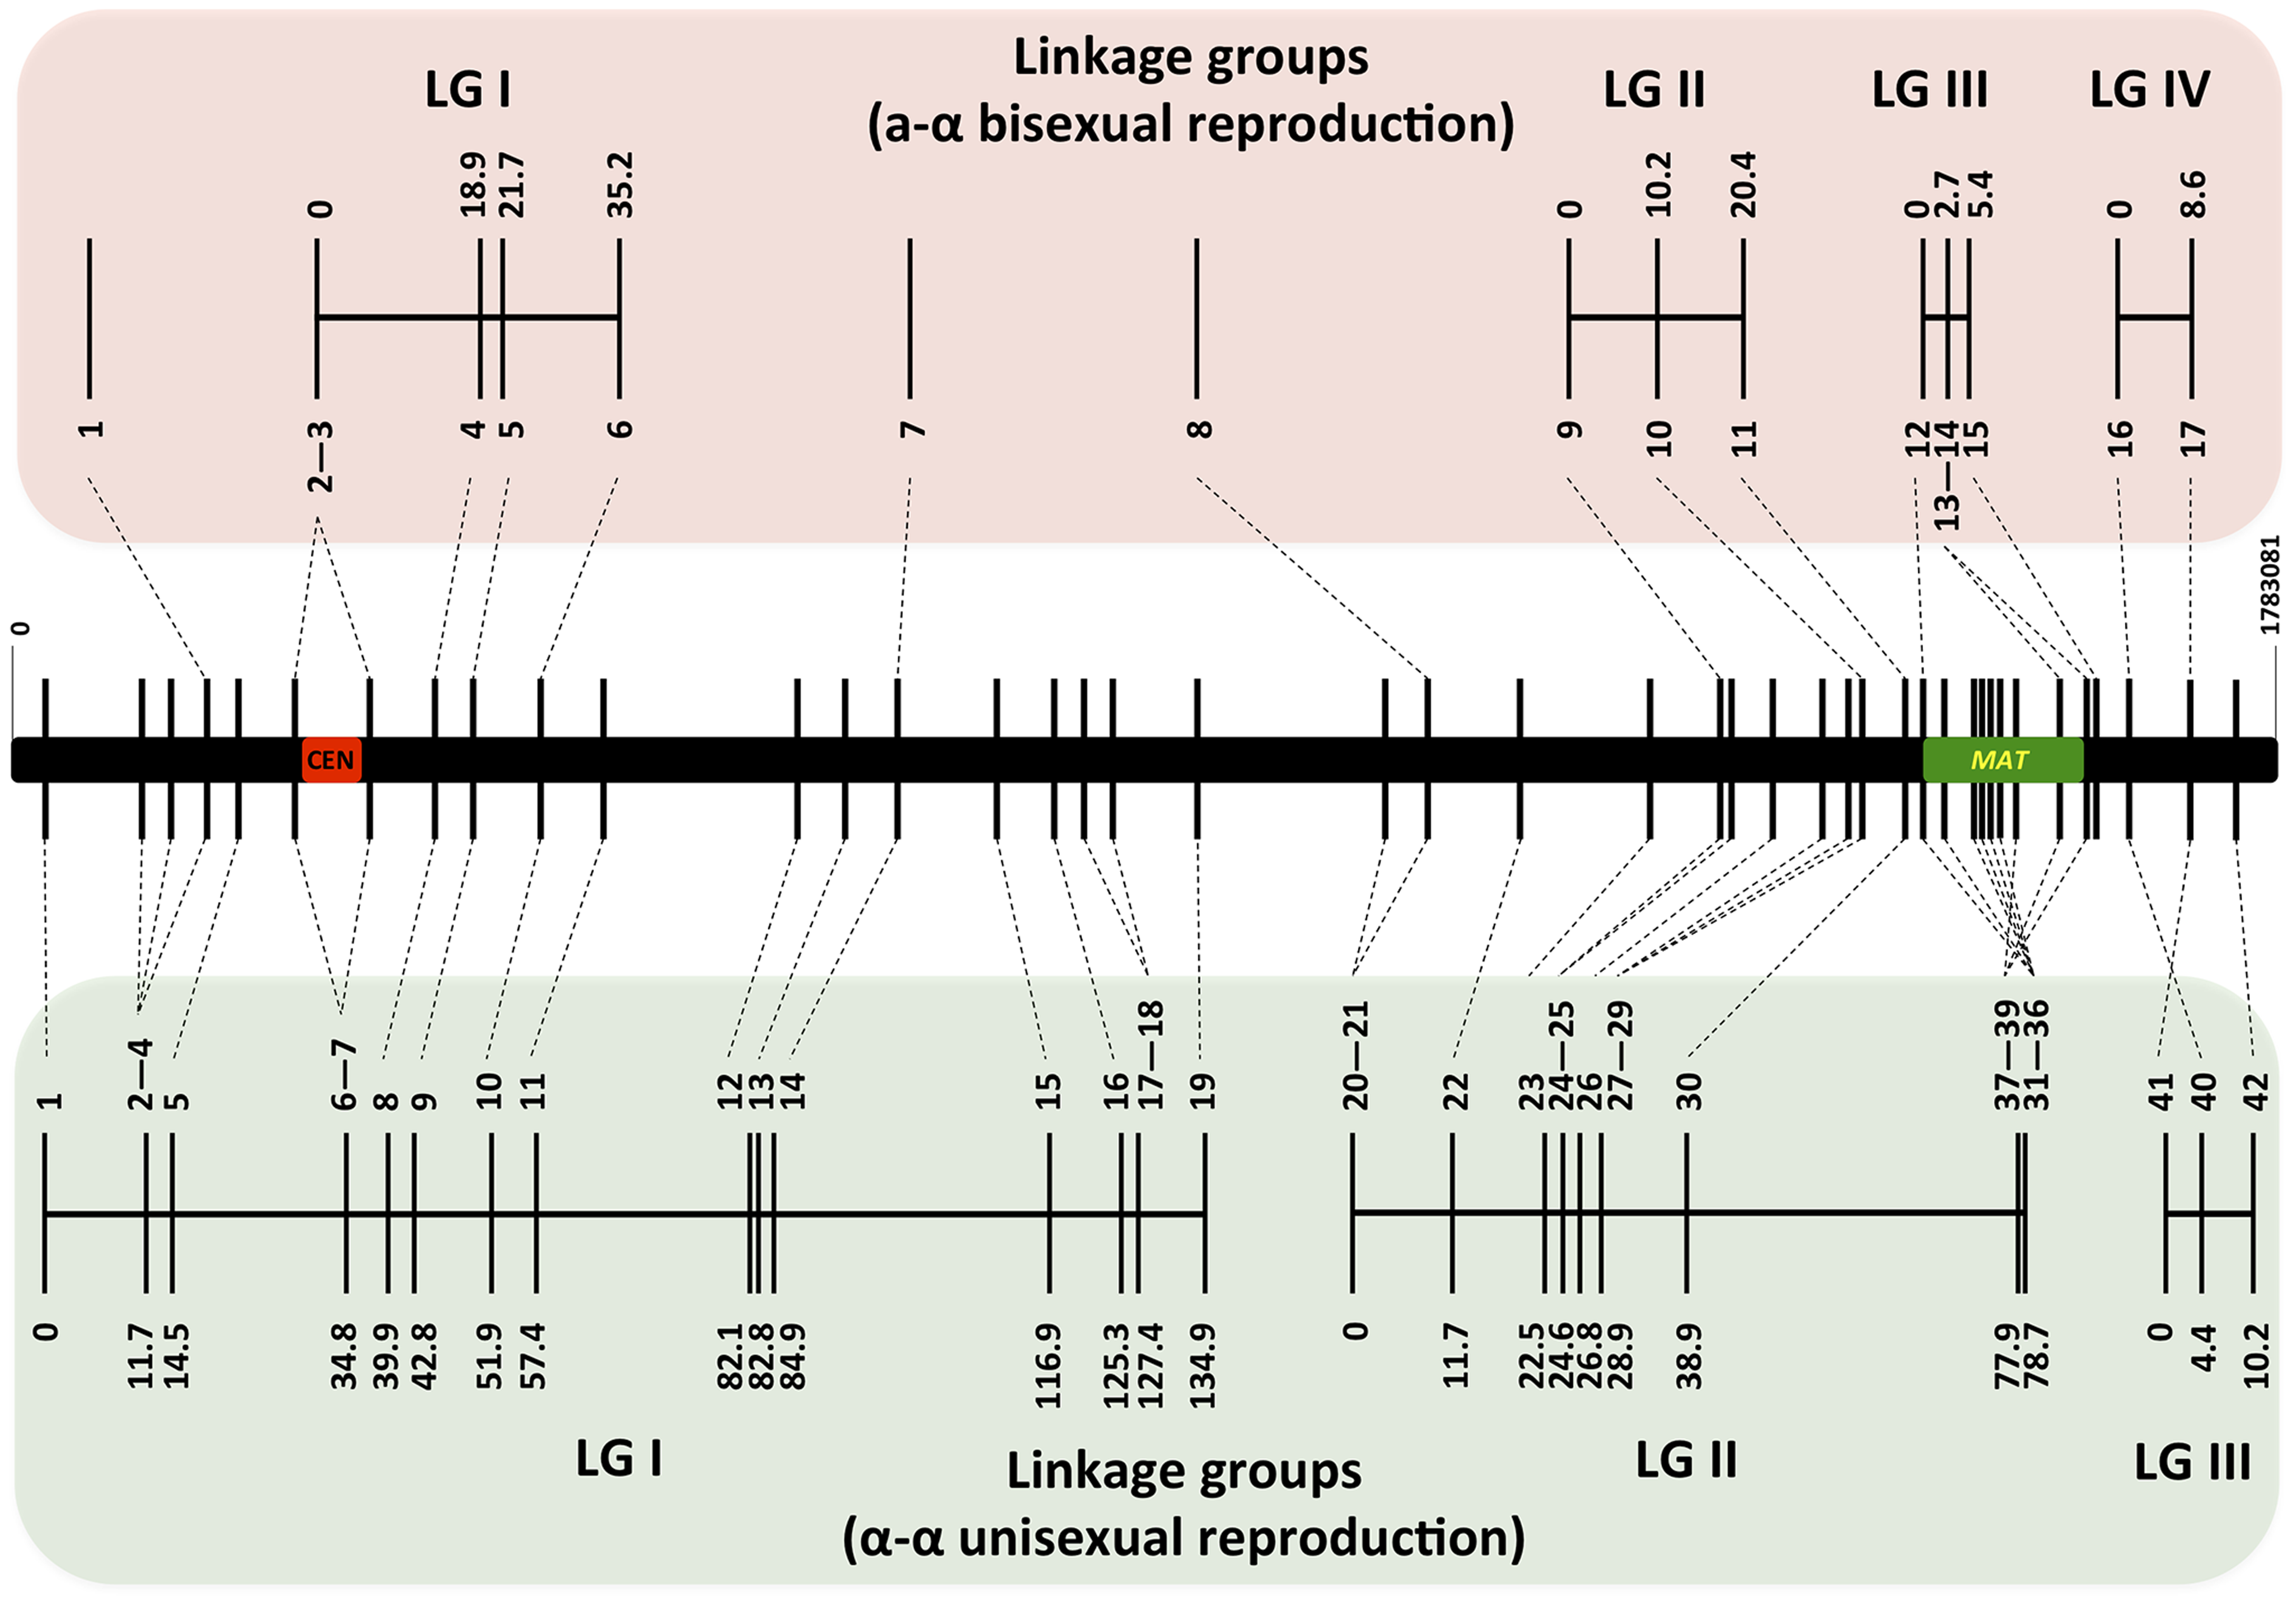 Genetic maps based on analysis of α-α unisexual and a-α bisexual reproduction meiotic progeny.